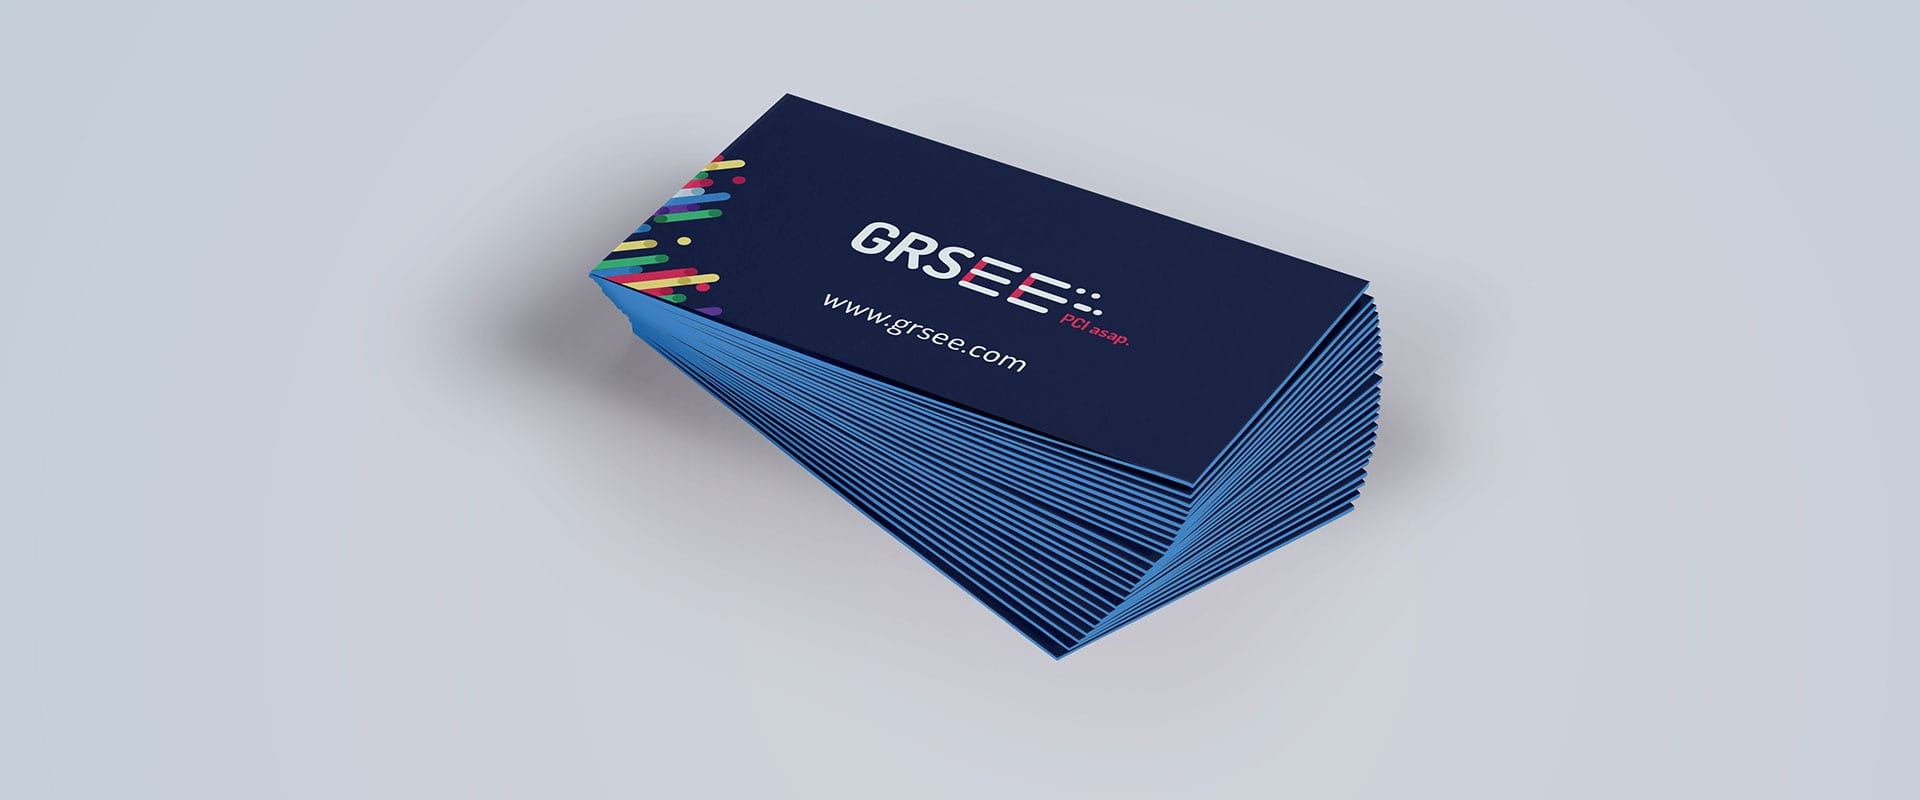 GRSee business card mockup